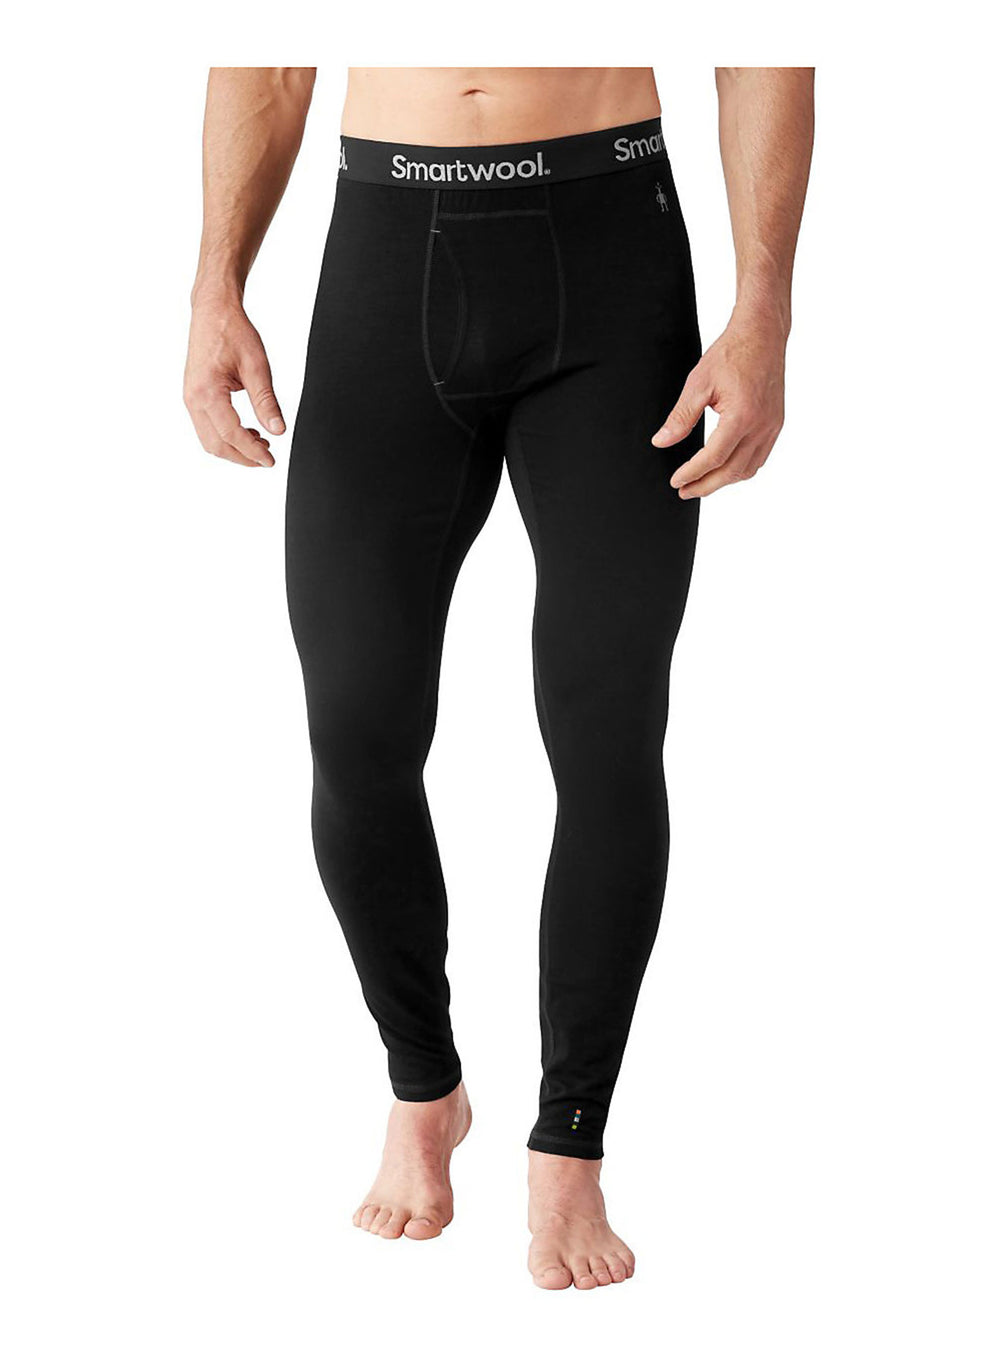 Smartwool Merino 150 Baselayer Bottoms - Men's